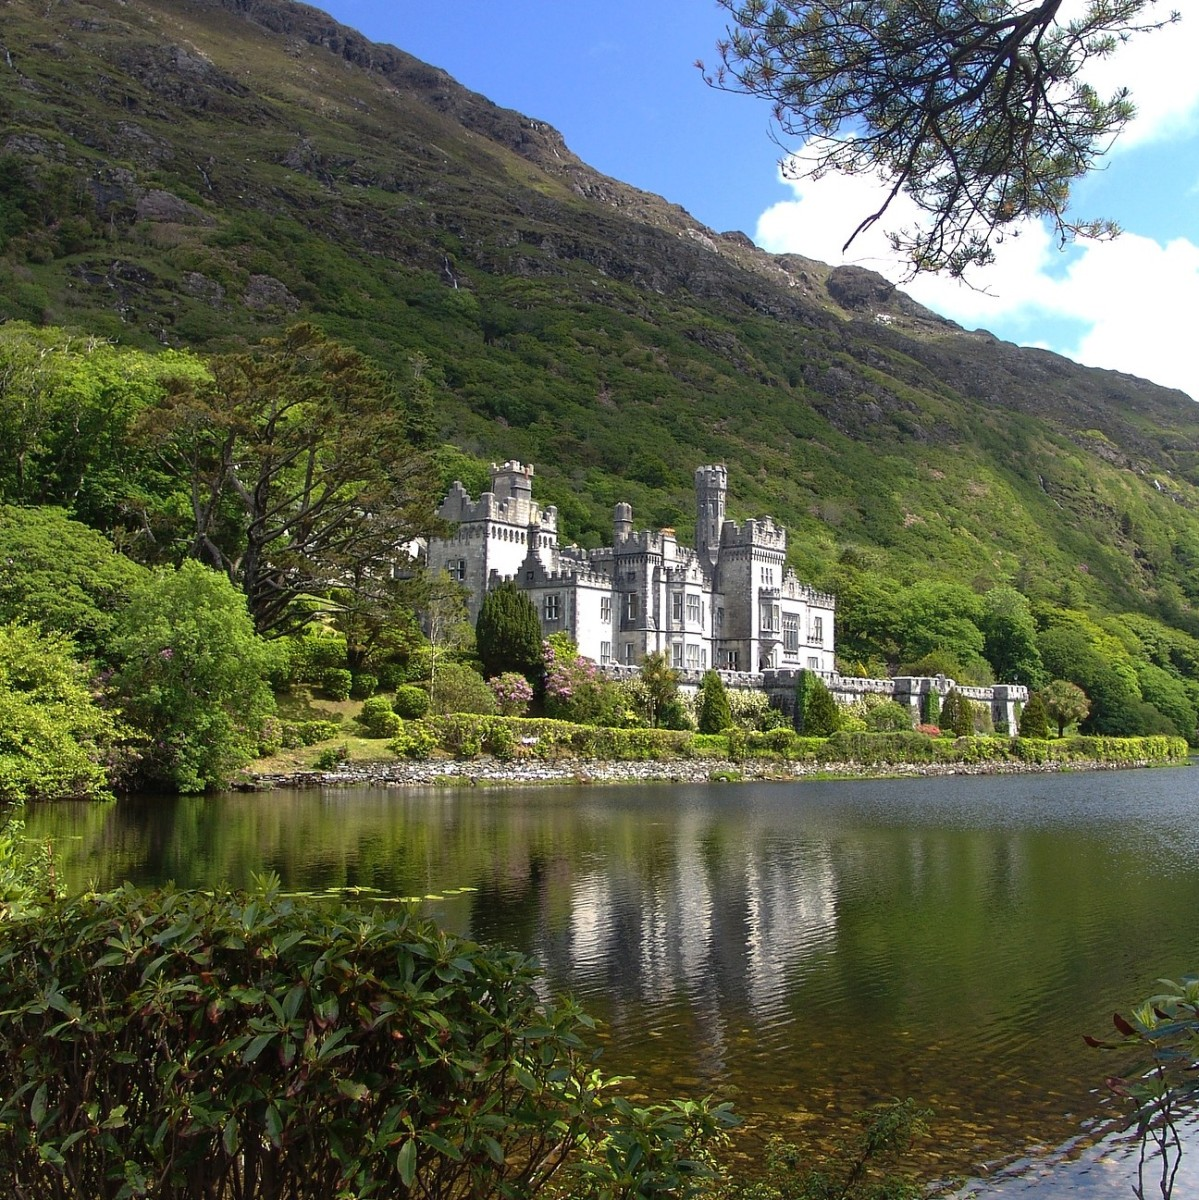 The beautiful Kylemore Abbey in Connemara, Co.Galway in the west of Ireland.